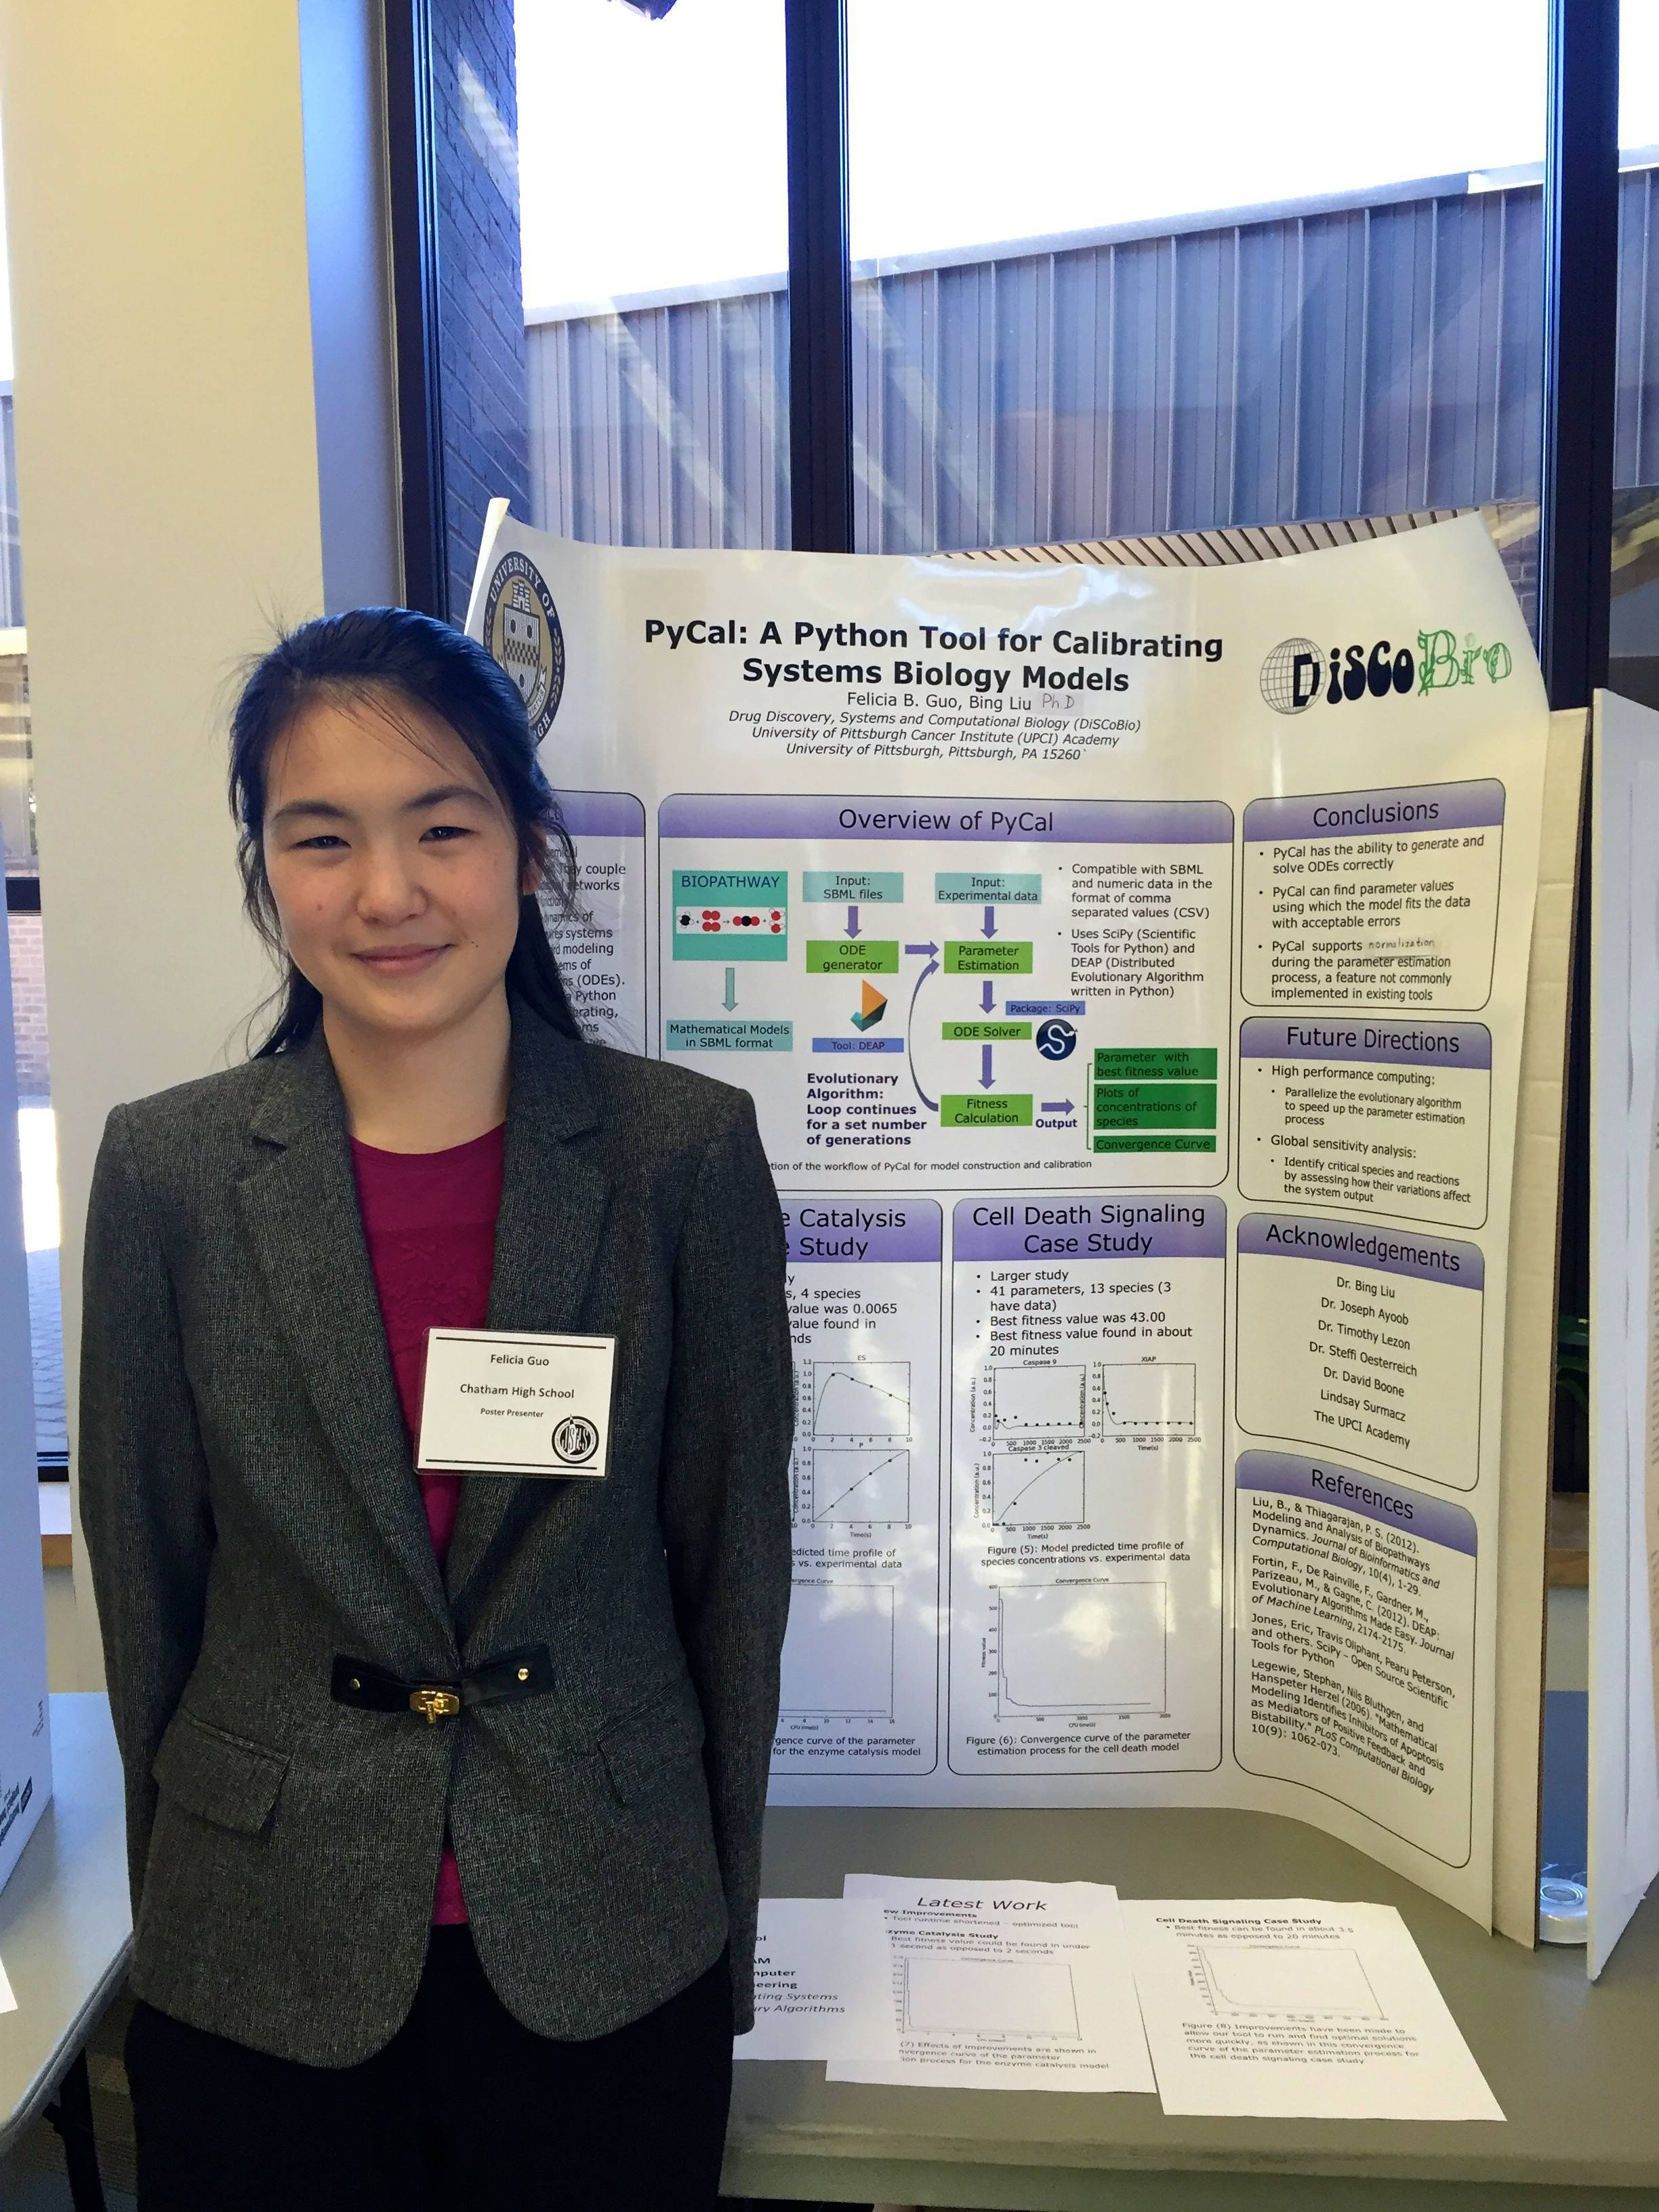 5a26ad50b2e4a675455f_380b97fc9f103cb2566a_Felicia_Guo_presents_her_poster_on_Computer_Modeling_of_BIochemical_reactions.jpg